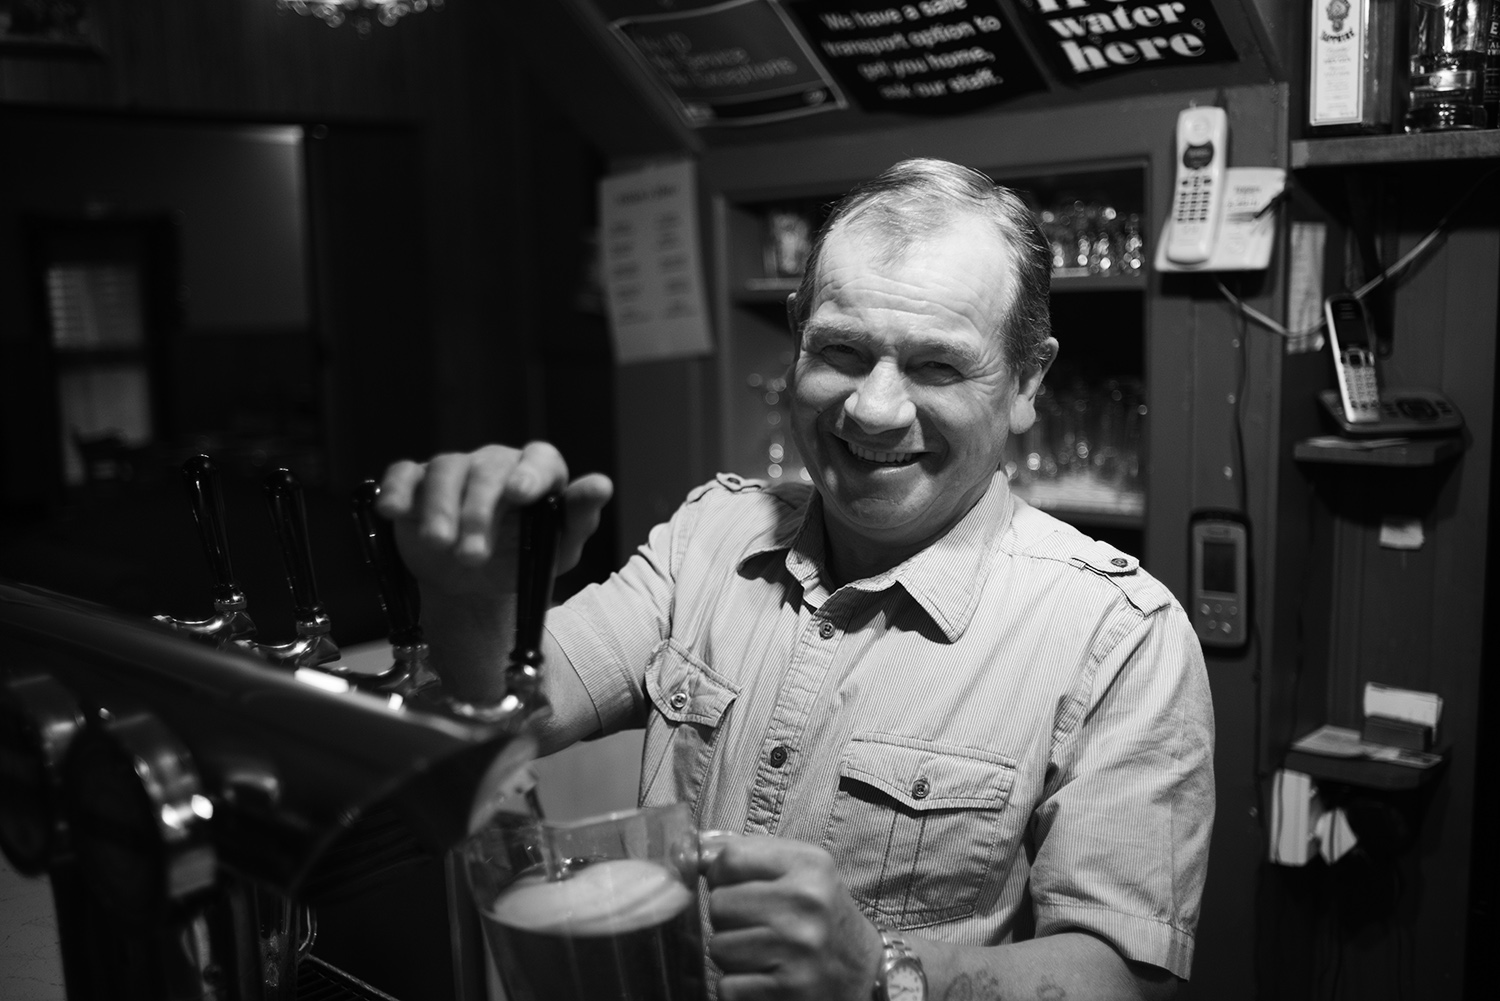 Jimmy. Owner of Wilsons Pub in Reefton, New Zealand.